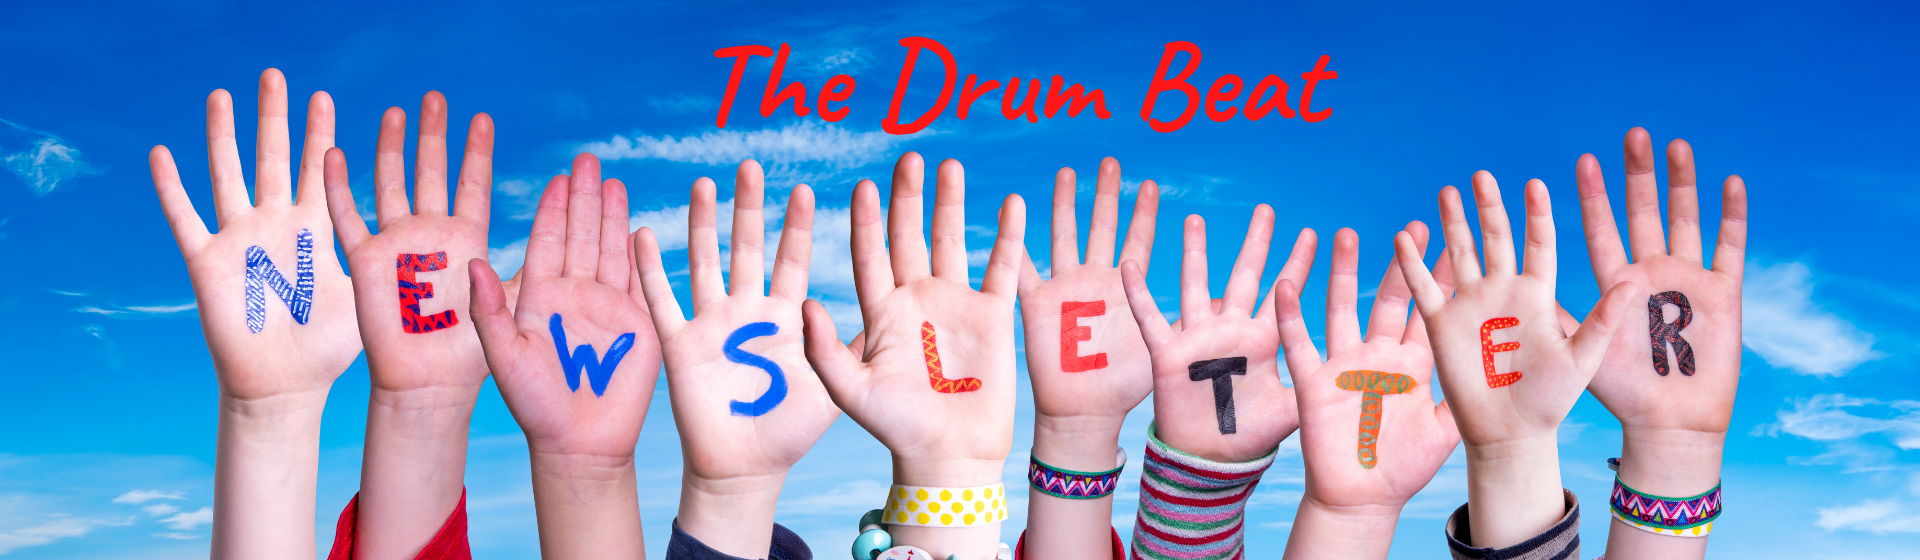 picture of children upraised hands with the word newsletter painted on the palms